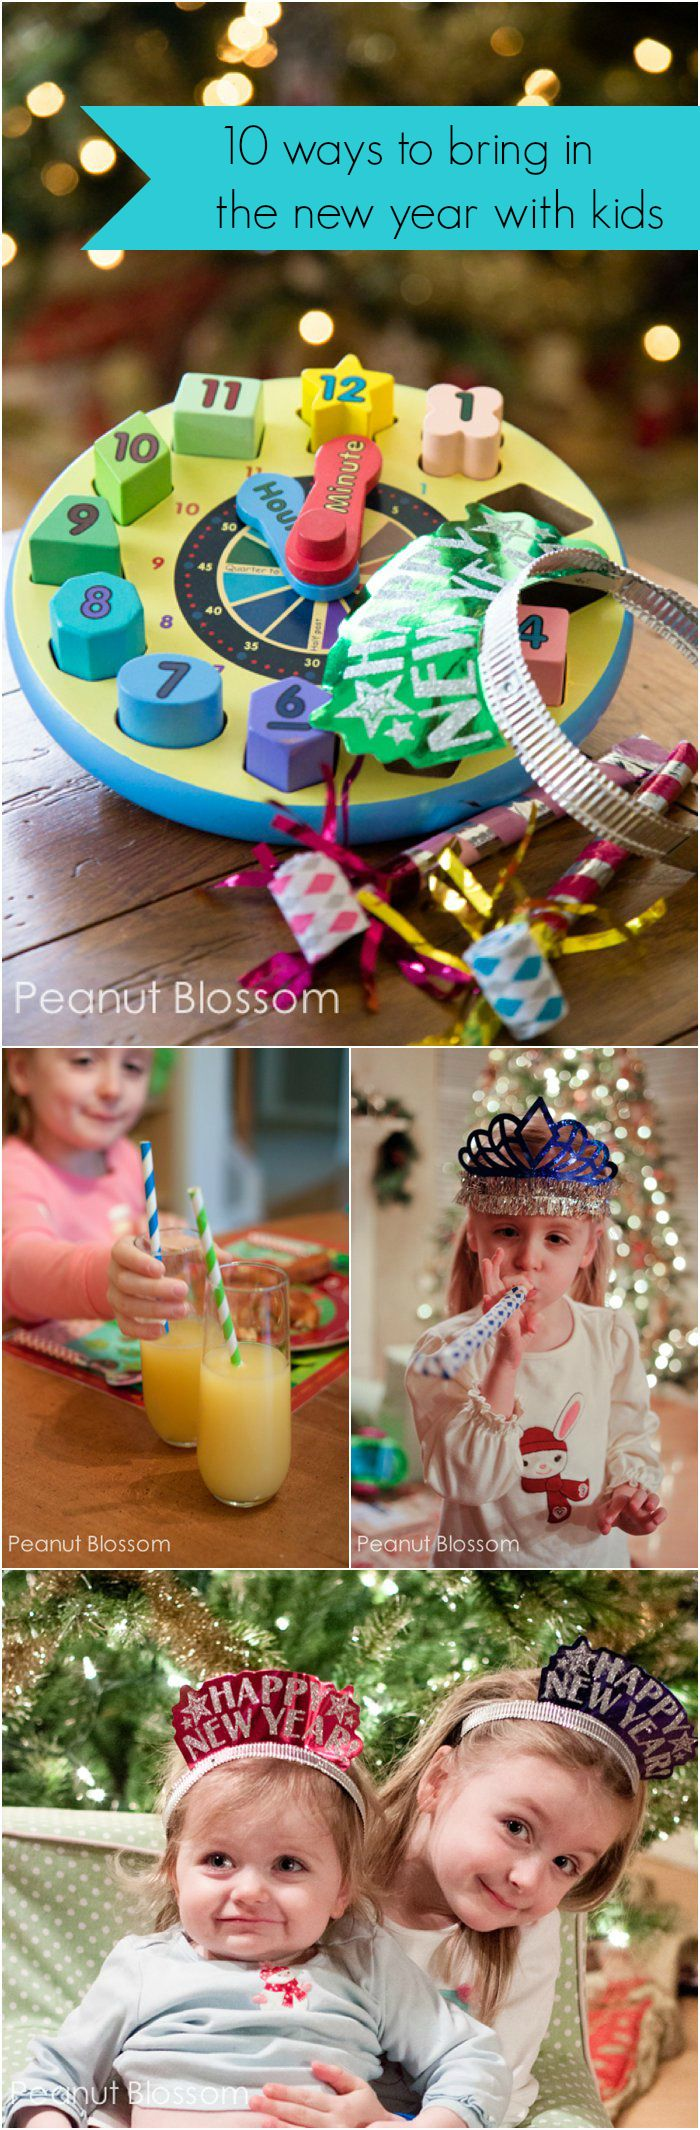 10 great ways to countdown to the new year with your kids *Cute ideas